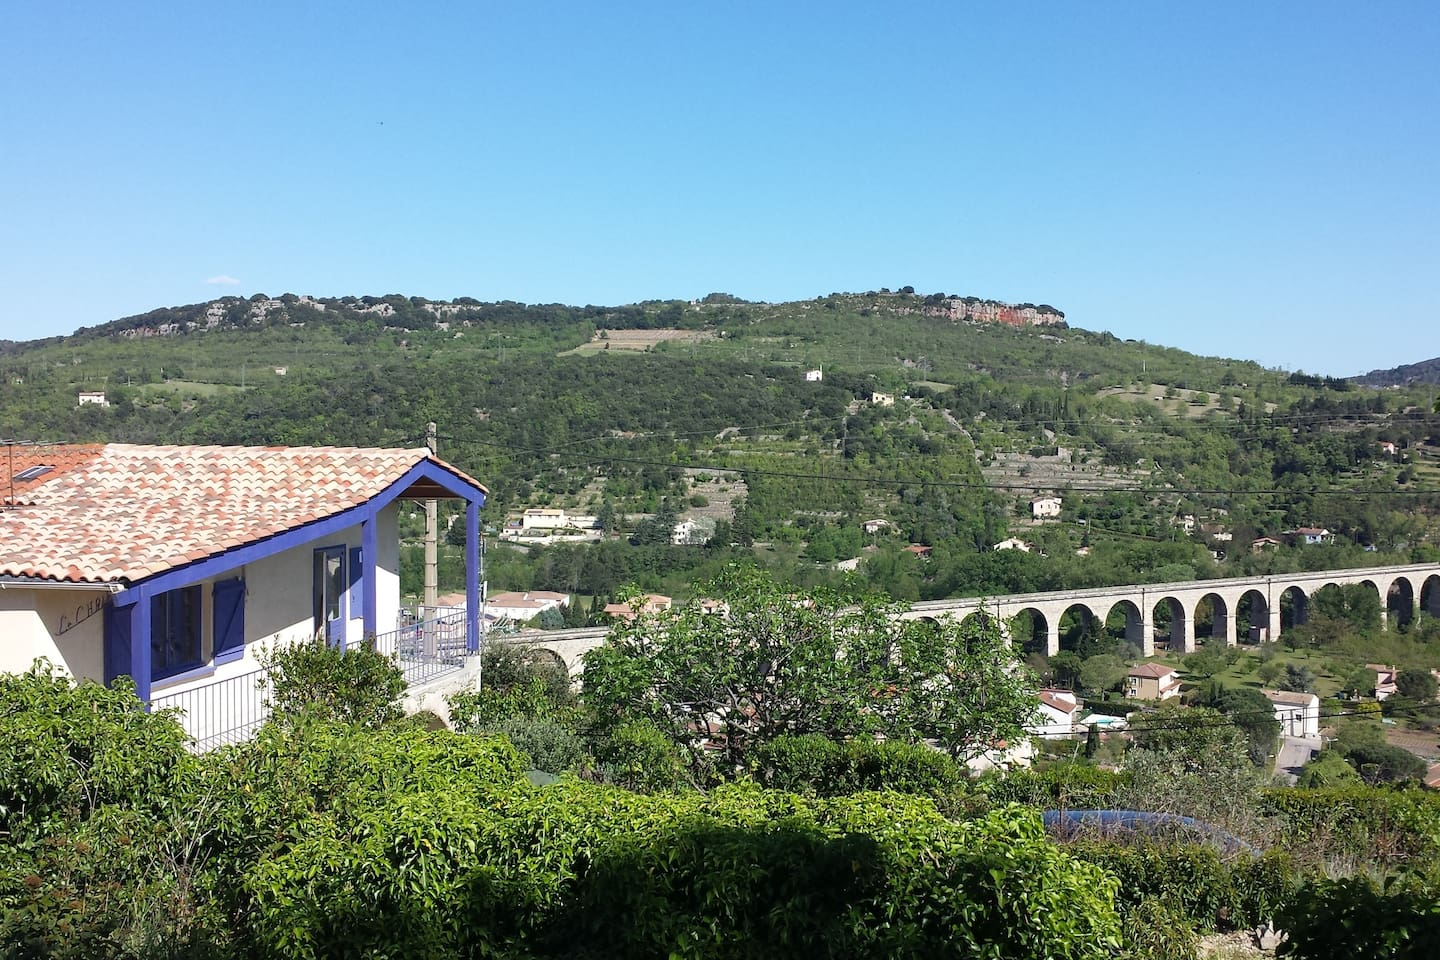 Great location, view over the village, mountains and the old railway bridge.